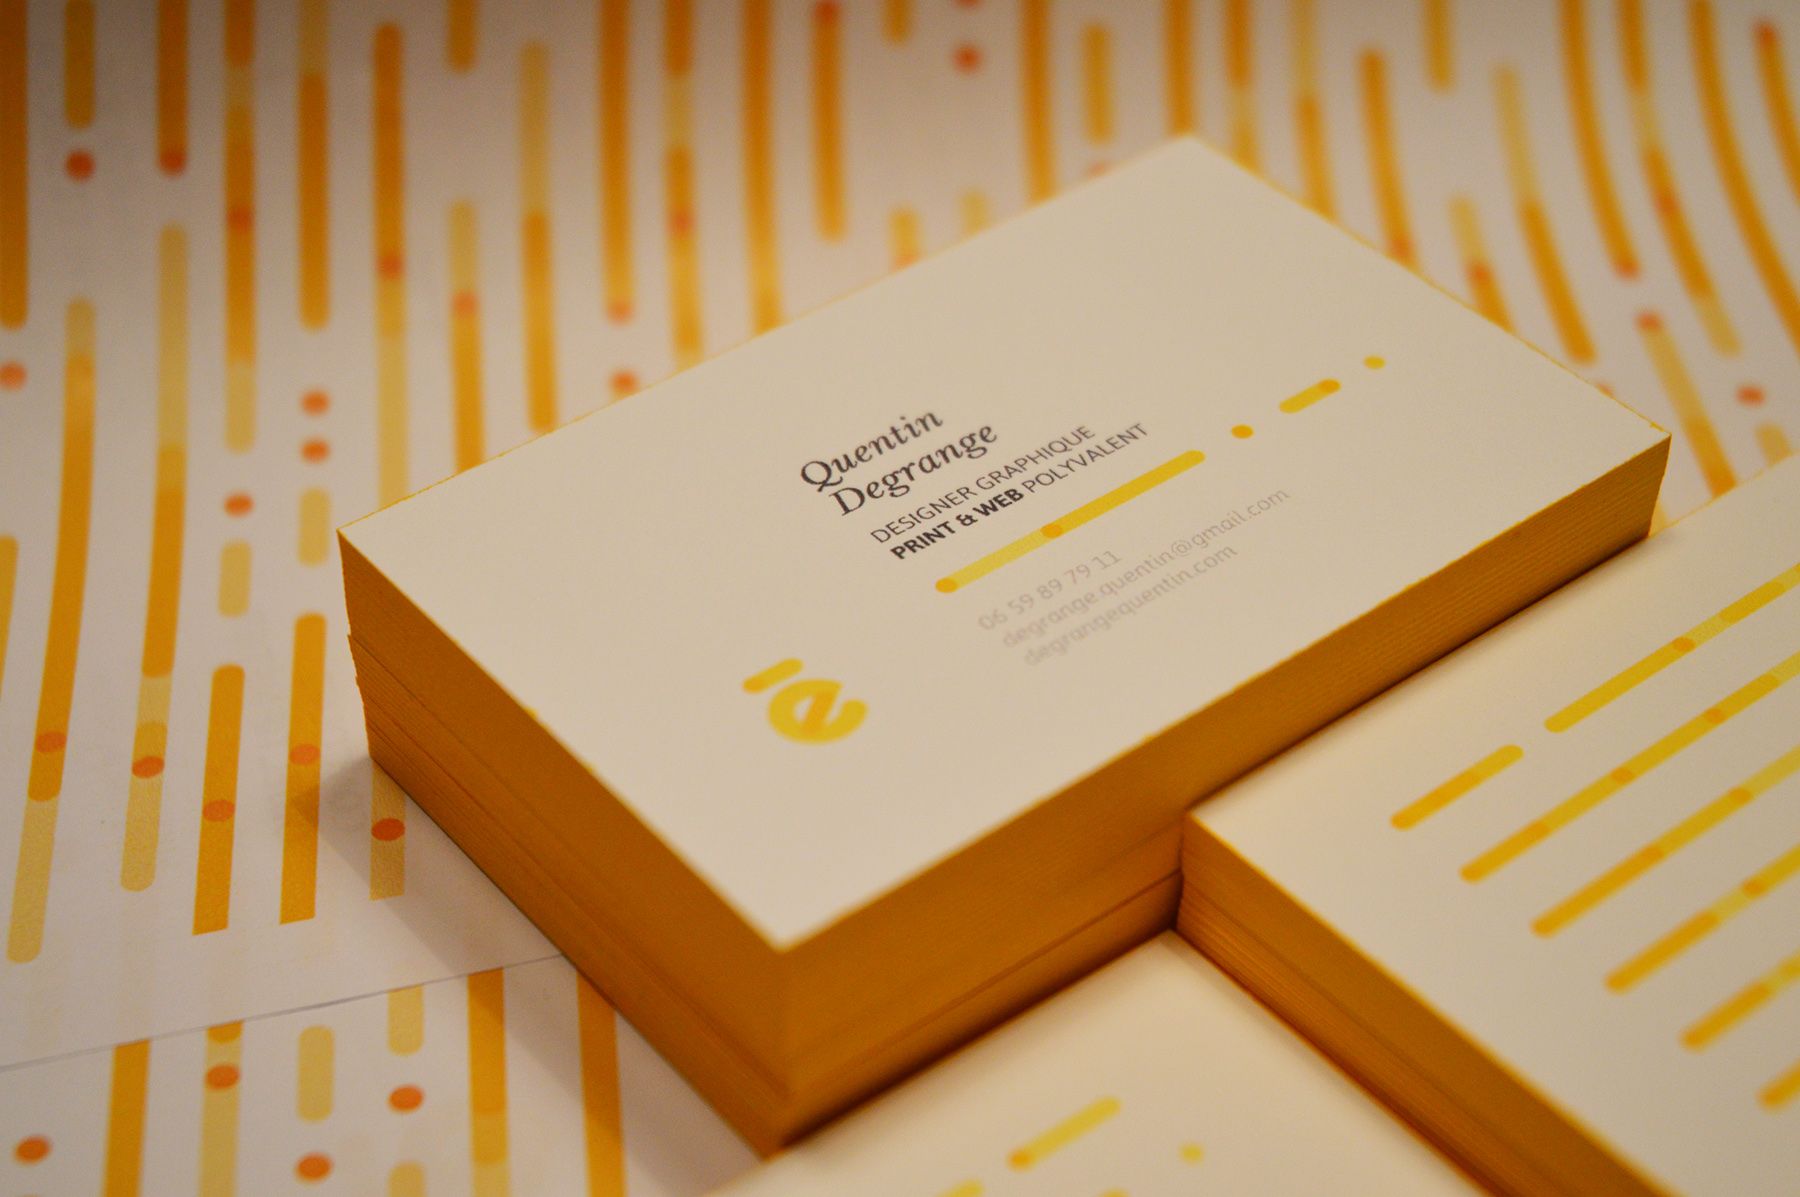 Self Branding. Quentin Degrange business cards 7